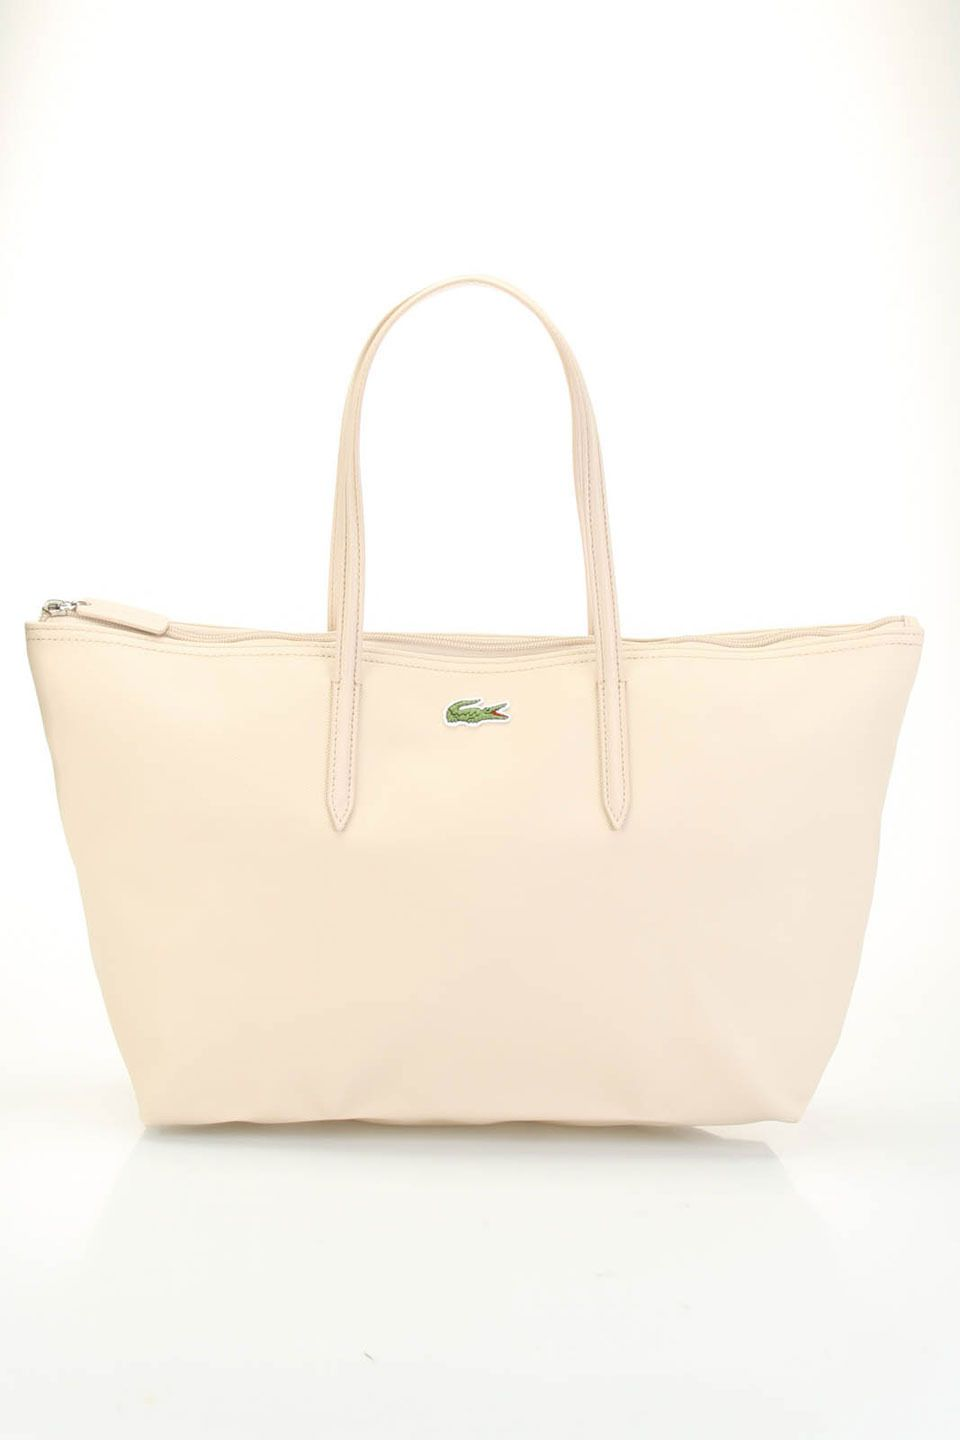 3aa5db1c03c Lacoste Large Shopping Bag In Smoke Gray | Lacoste | Lacoste bag ...